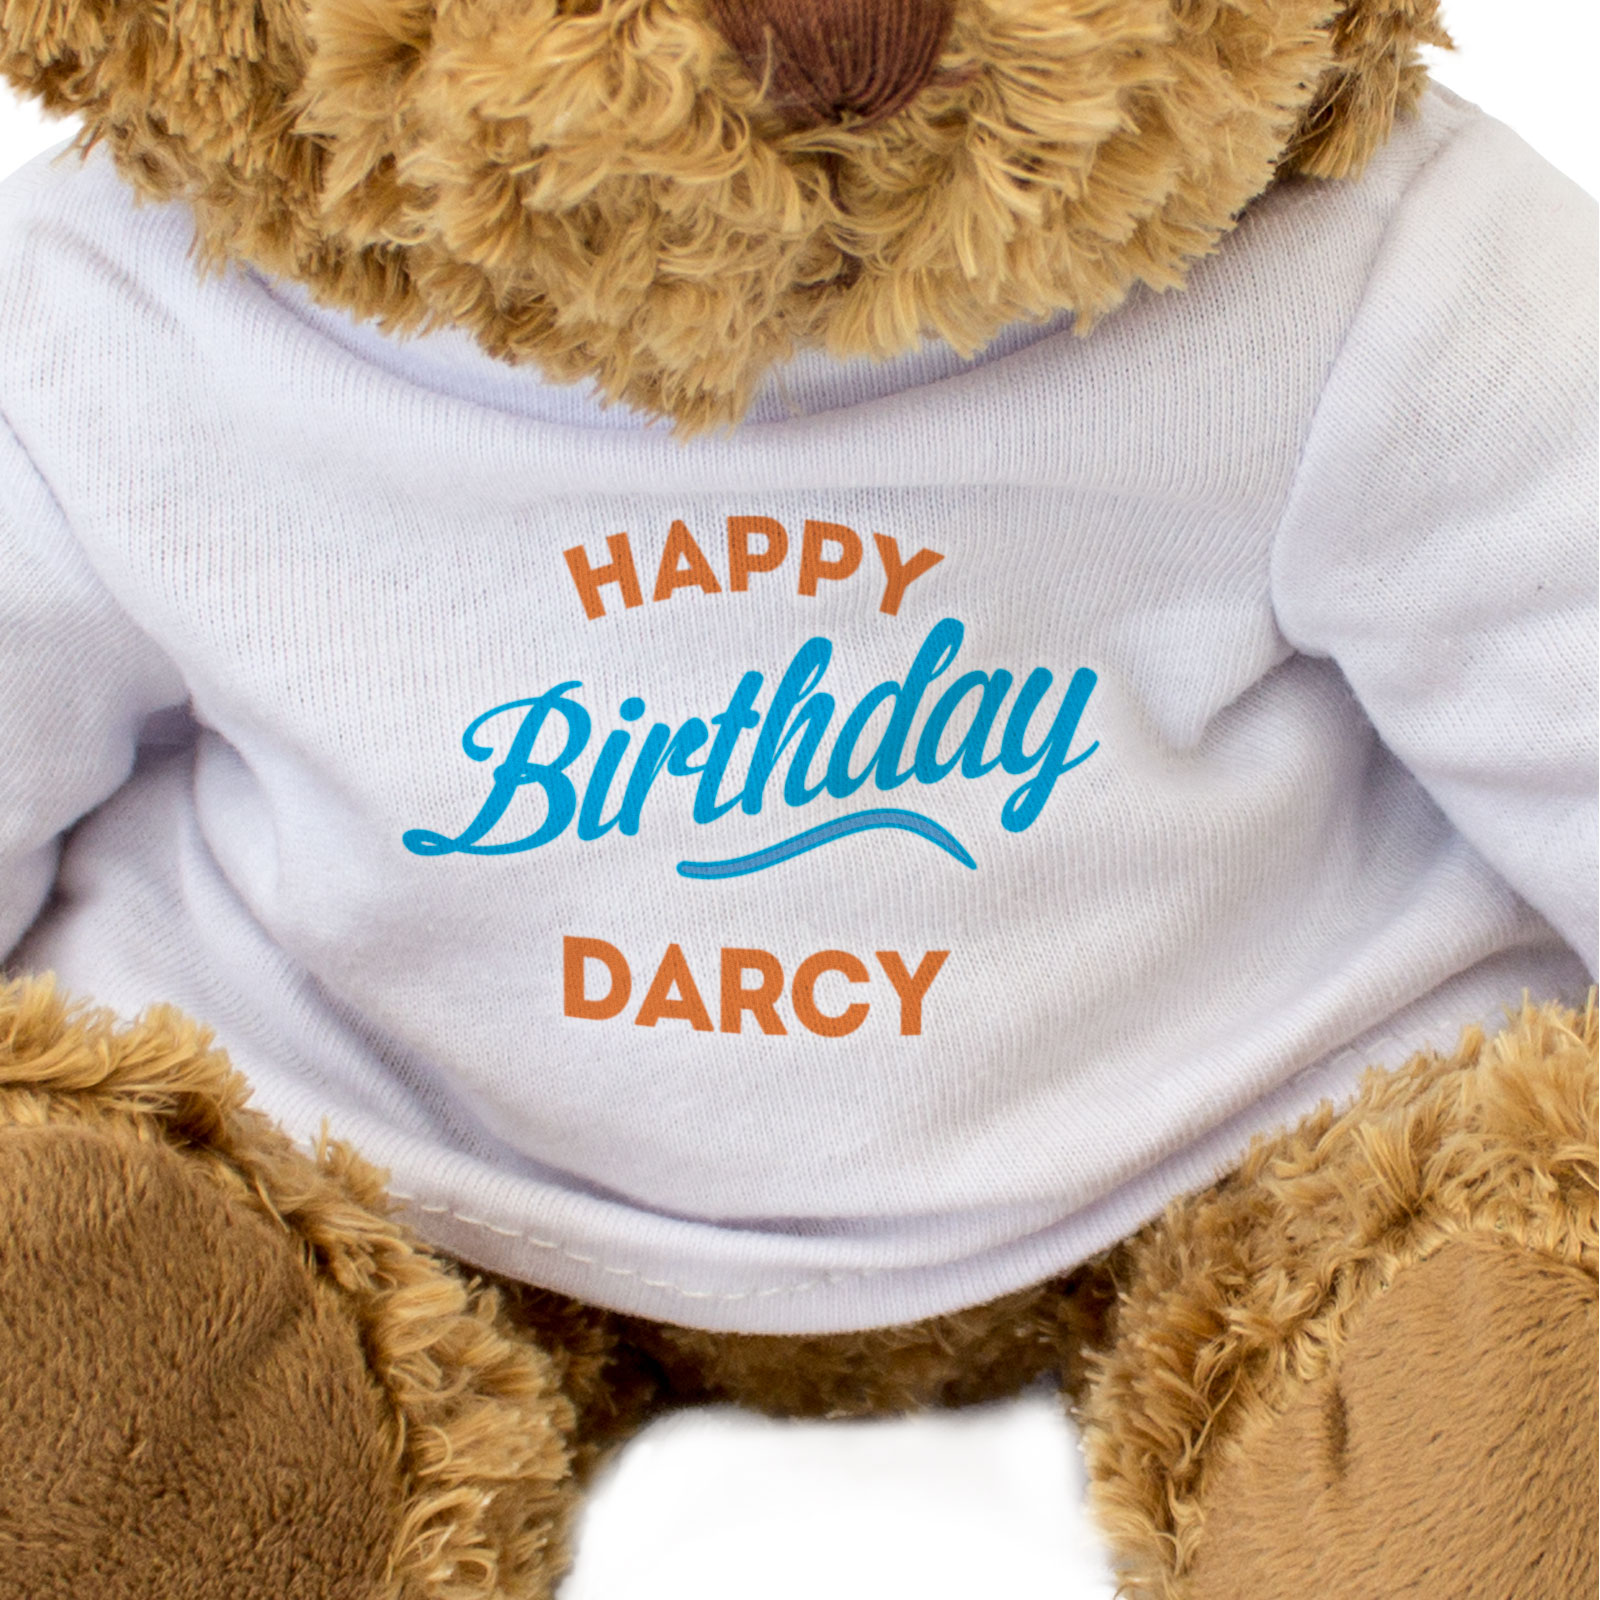 happy birthday darcy ; happy-birthday-darcy-bear-3